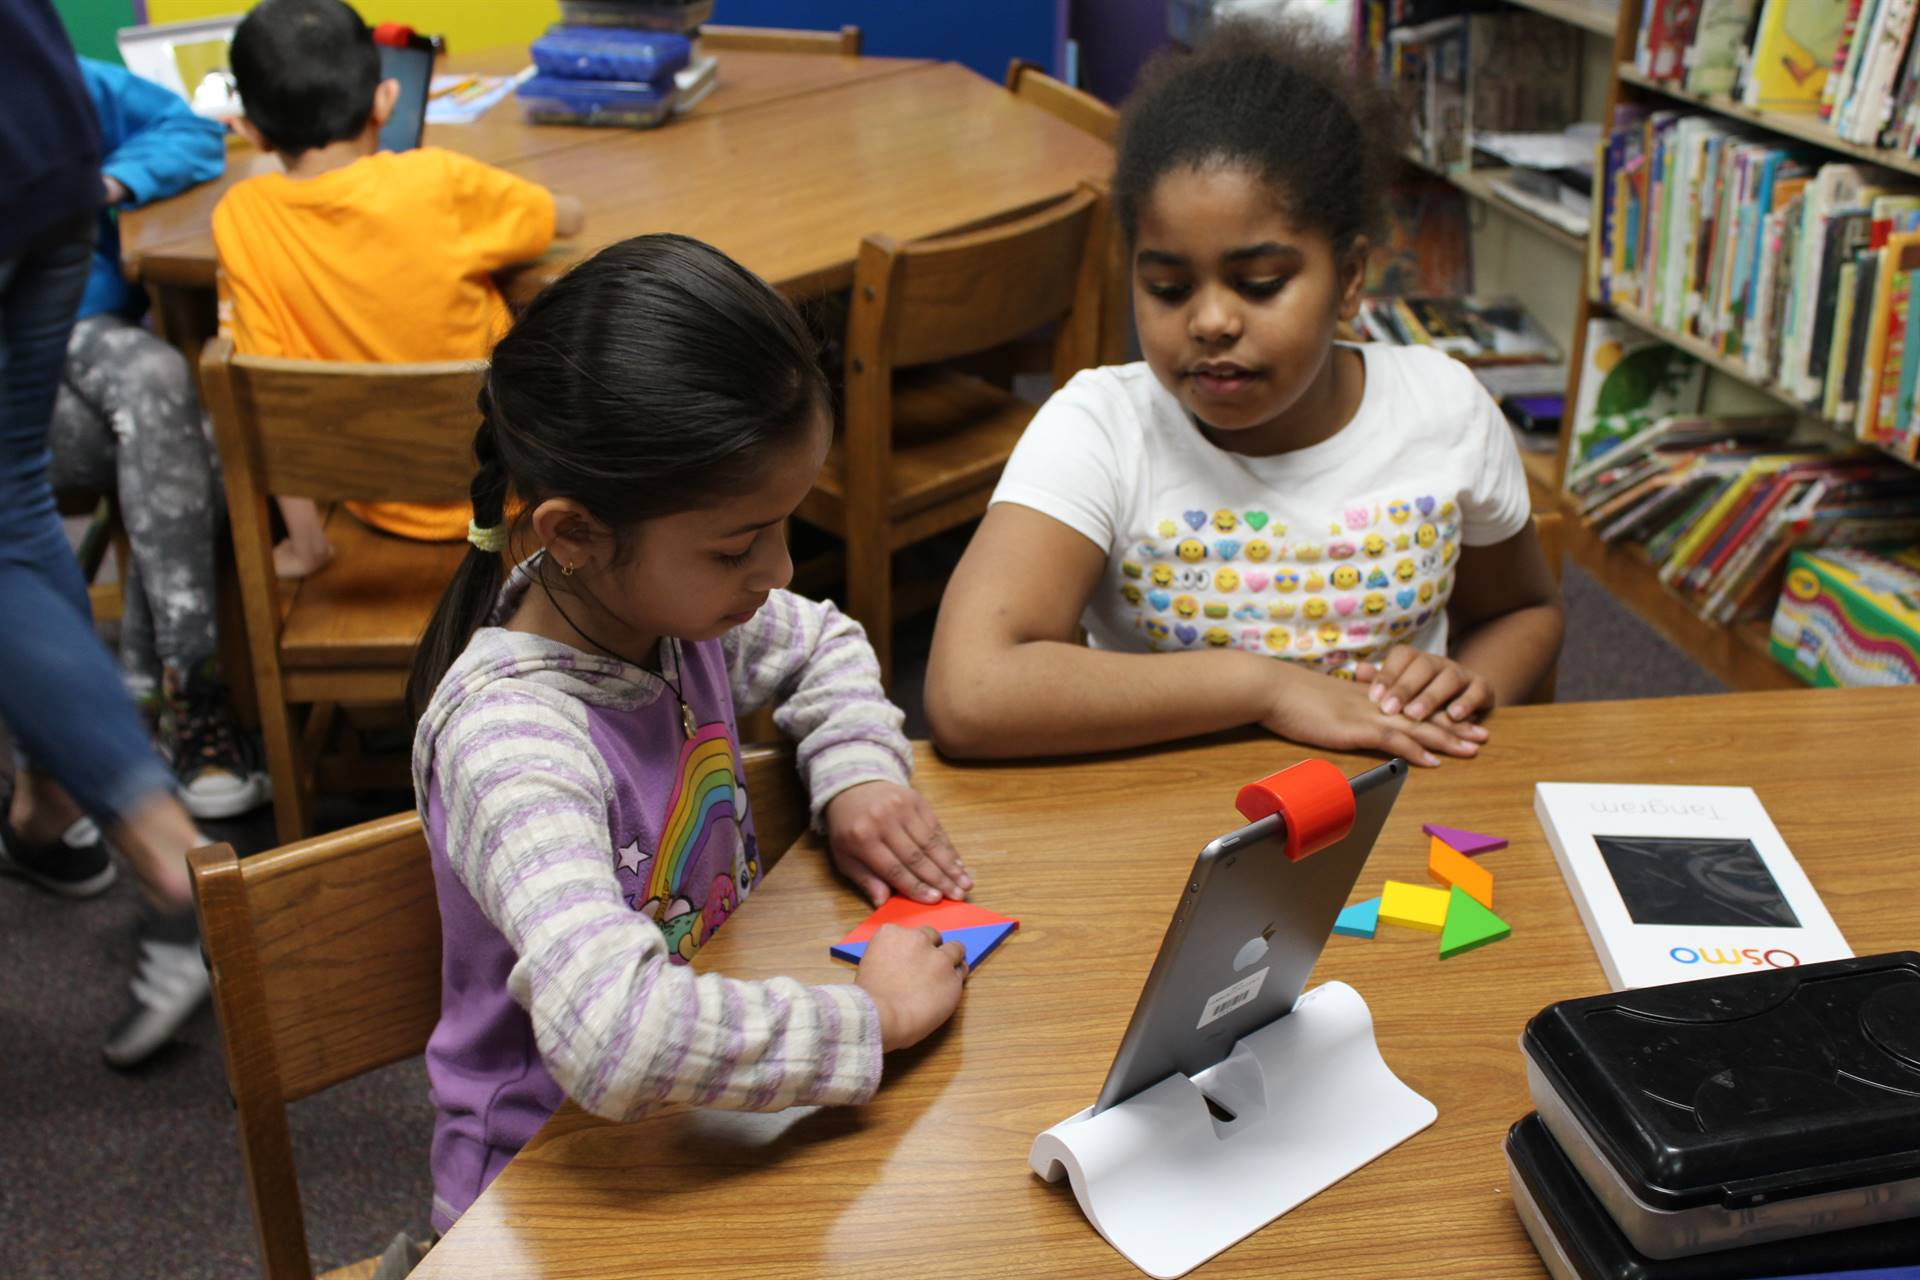 Students using OSMO at Lincoln Learners